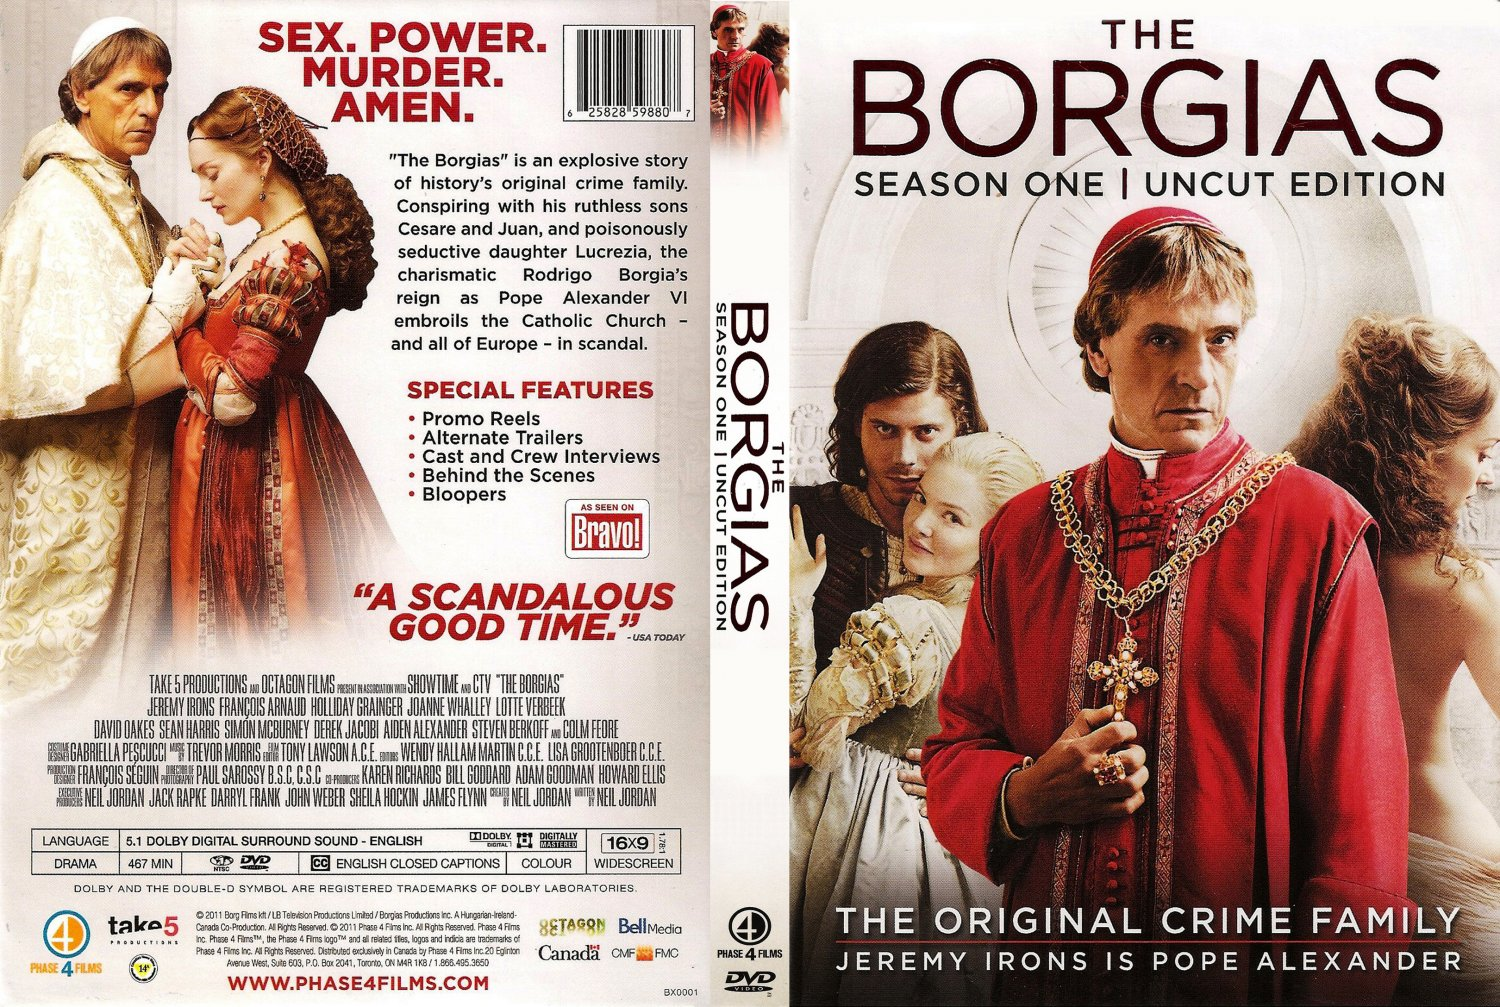 The Borgias The Final Season DVD